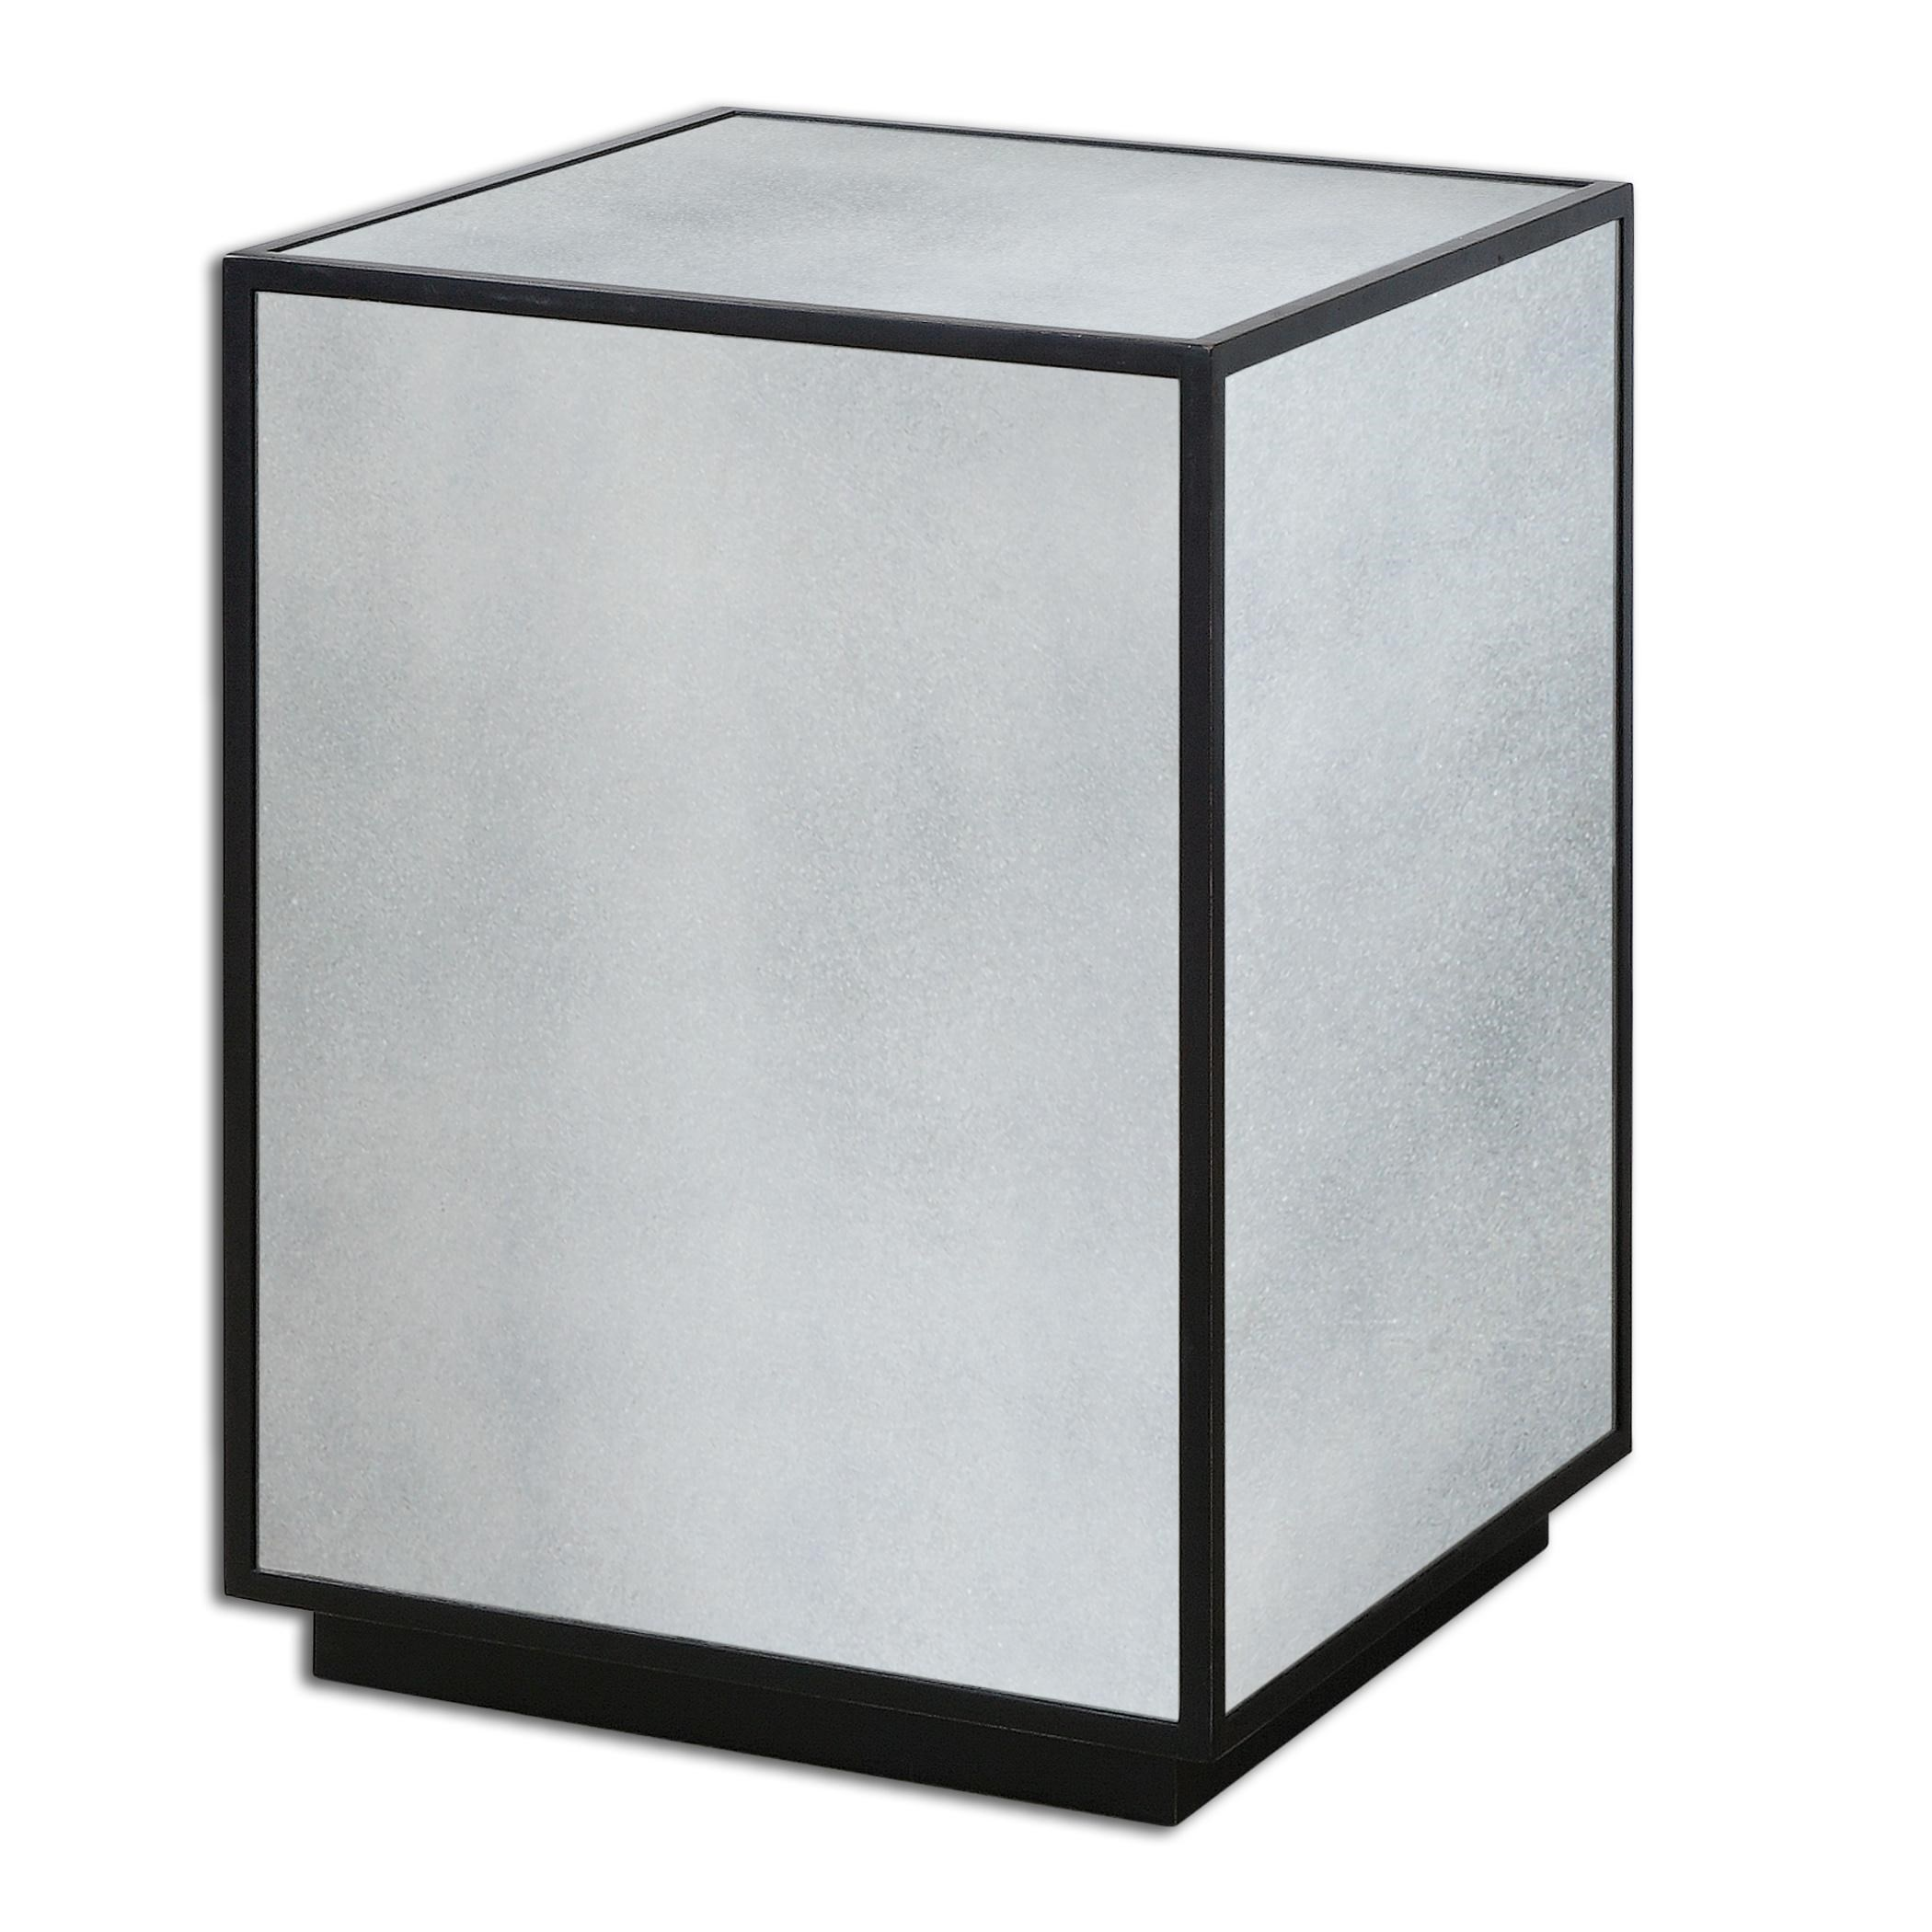 mirrored side table. Uttermost Accent FurnitureMatty Mirrored Side Table S